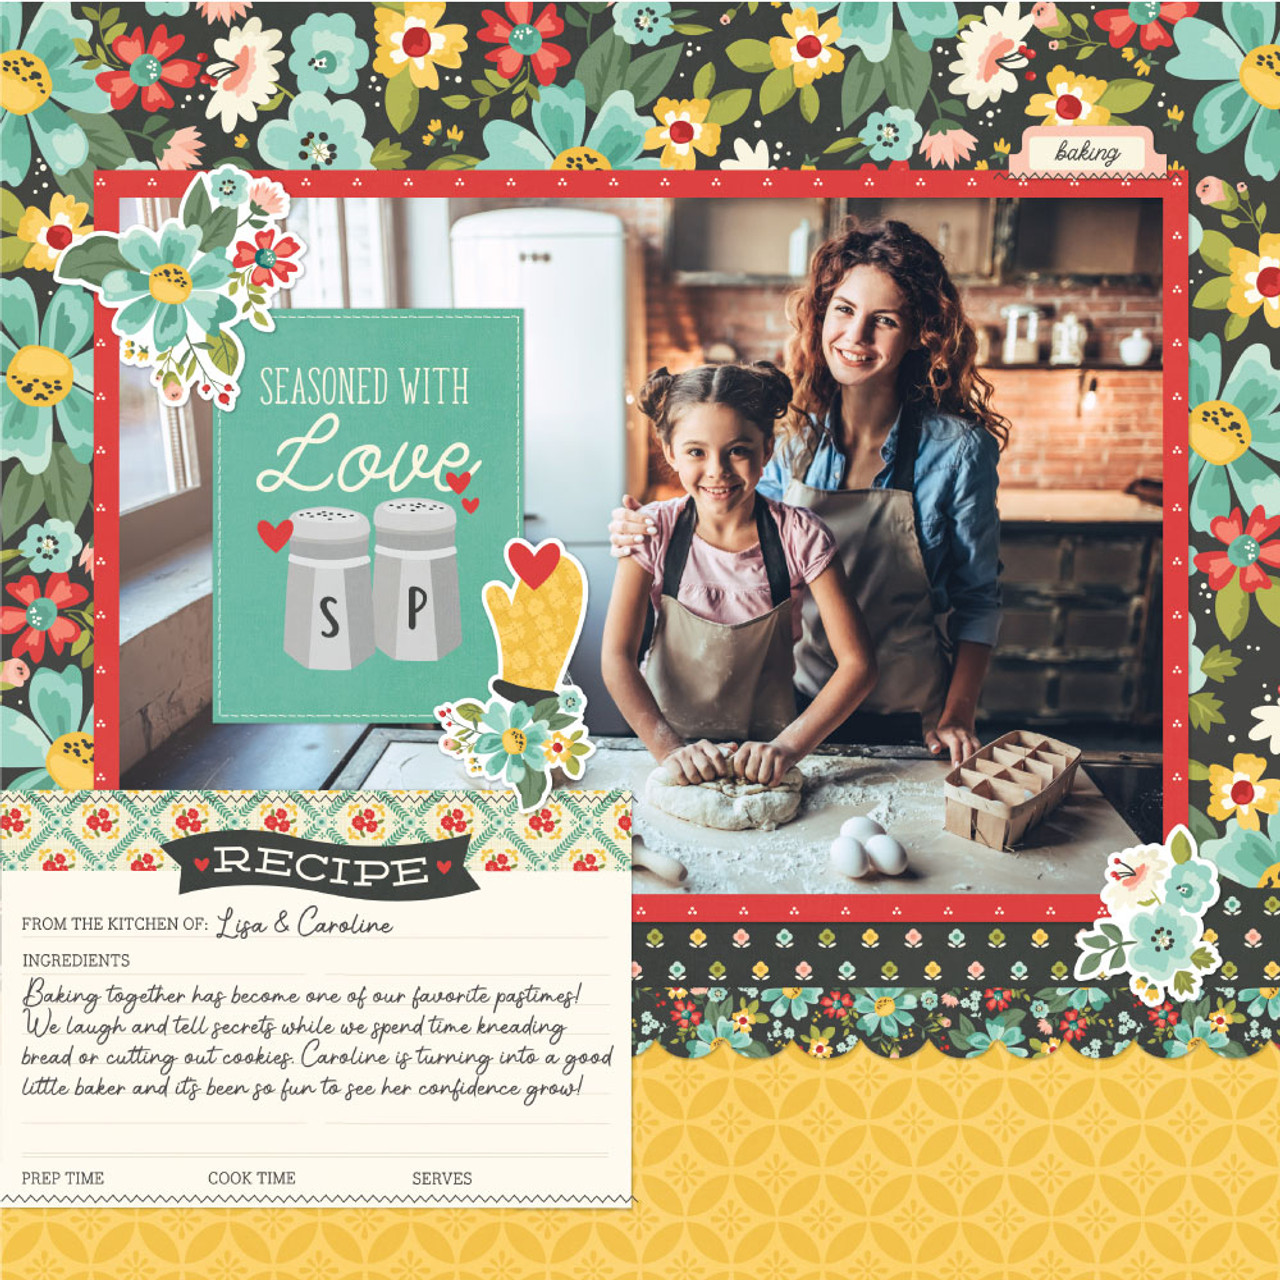 Apron Strings Collection Seasoned with Love 12 x 12 Double-Sided Scrapbook Paper by Simple Stories